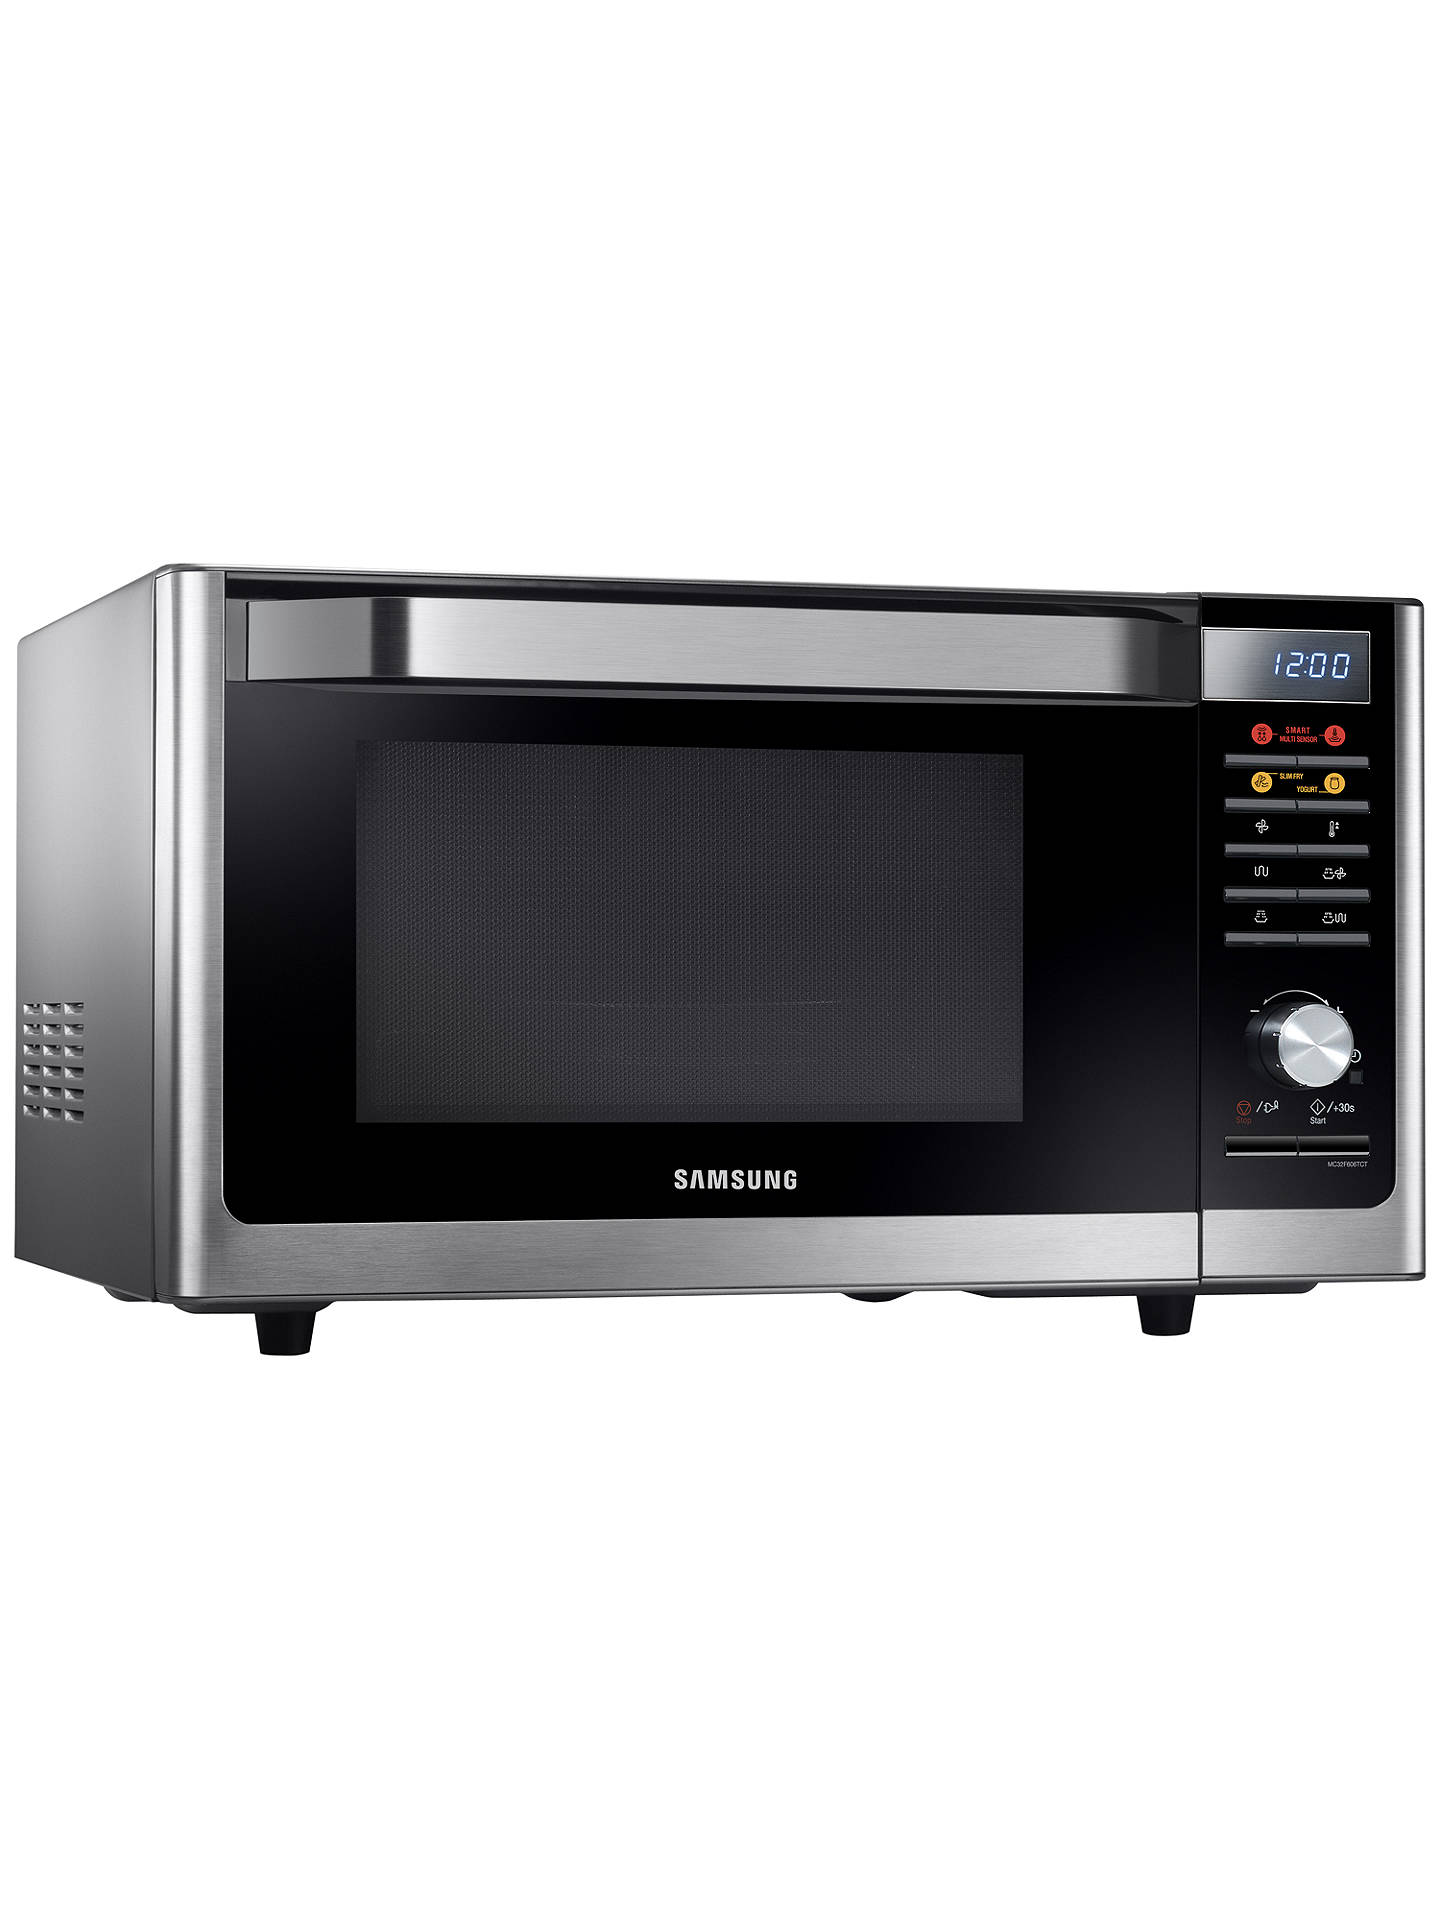 Samsung MC32F606TCT Smart Microwave Oven with Grill